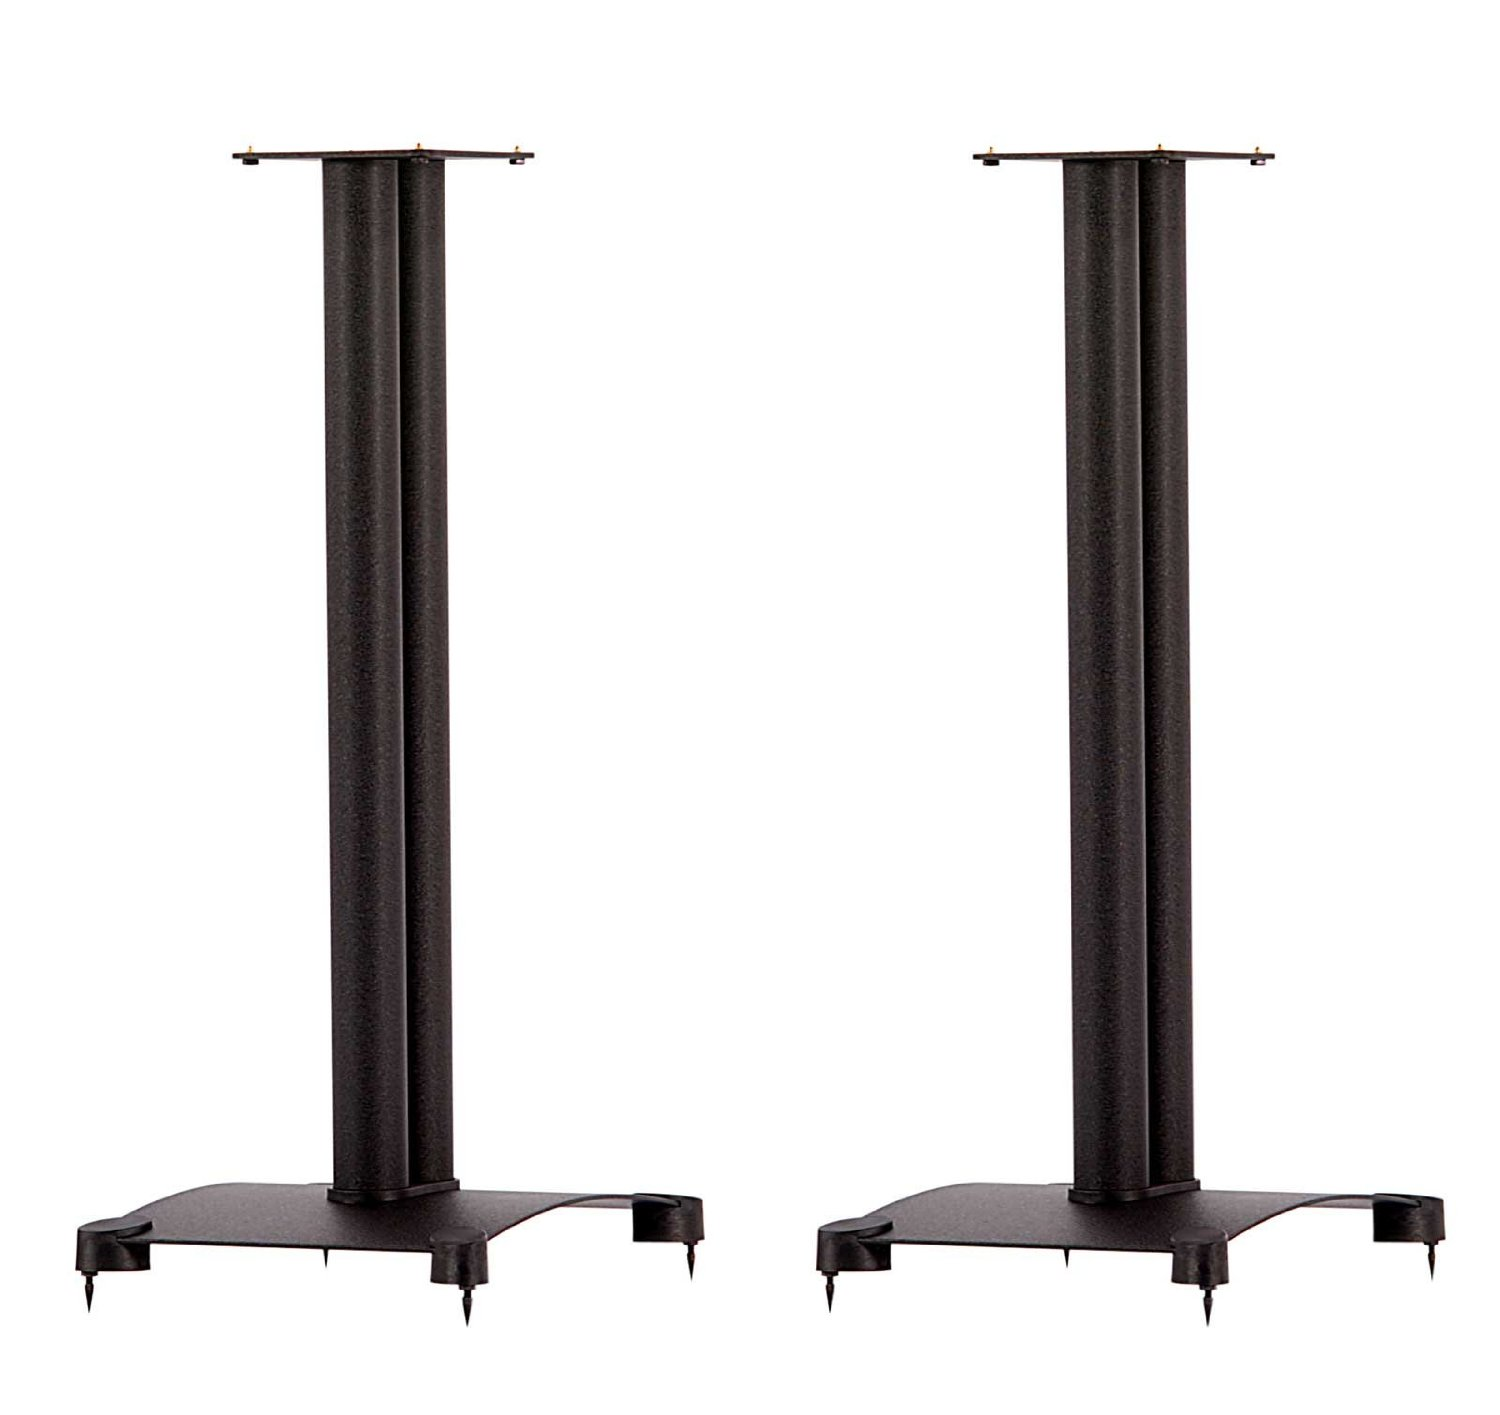 Sanus SF30-B1 Steel Foundations 30-inch Speaker Stands (PAIR) by Sanus